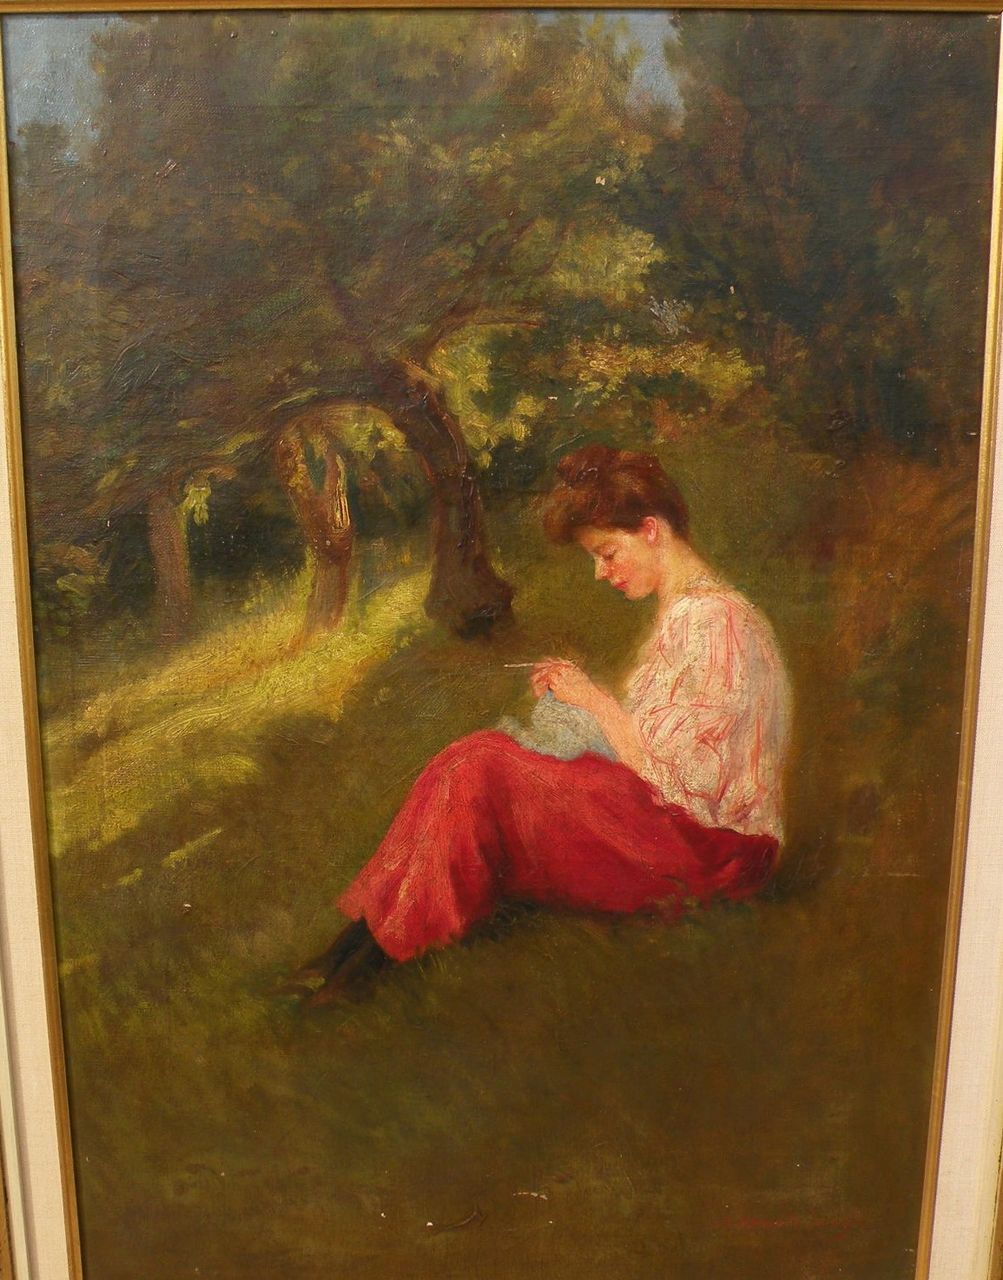 A. MORENO DE TORRES (Argentinian, 19th/20th century) oil painting of young woman on a grassy slope in a forest glade